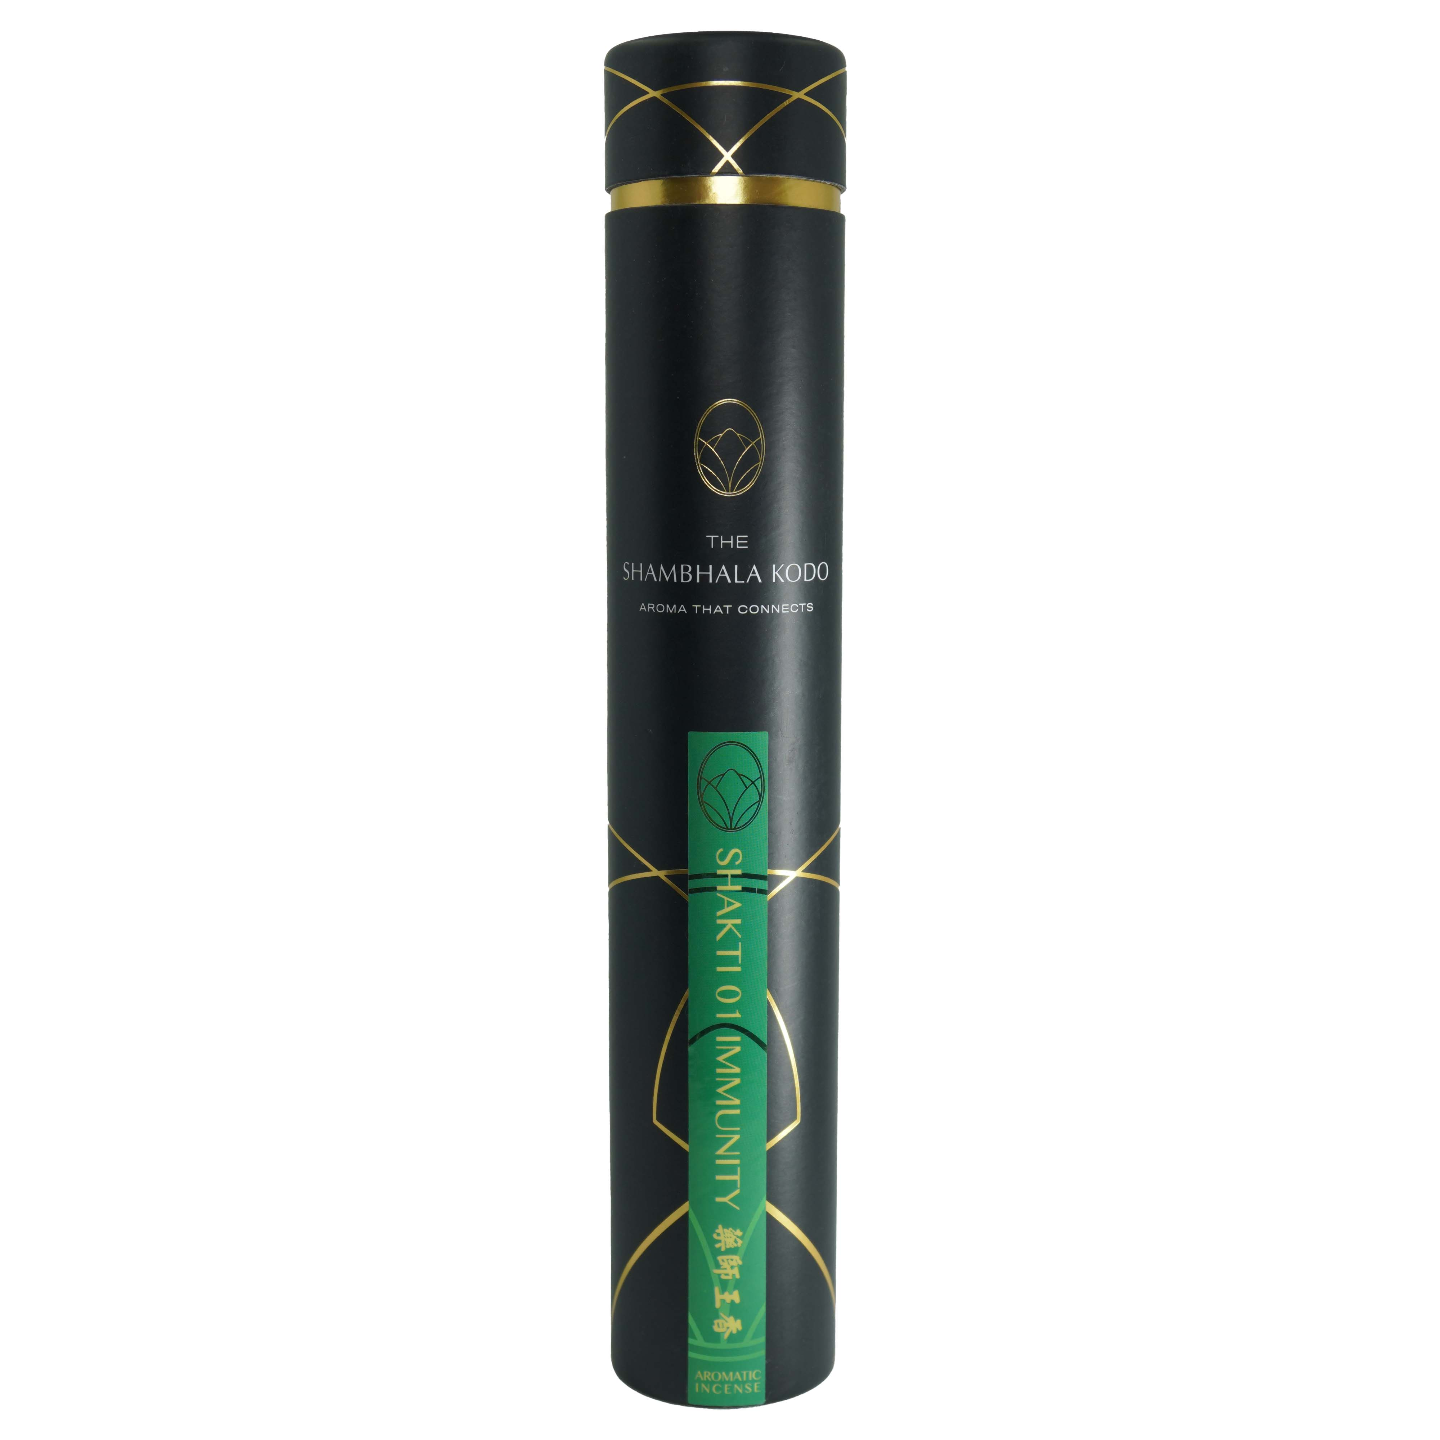 Shakti 01 Aromatic Incense Sticks